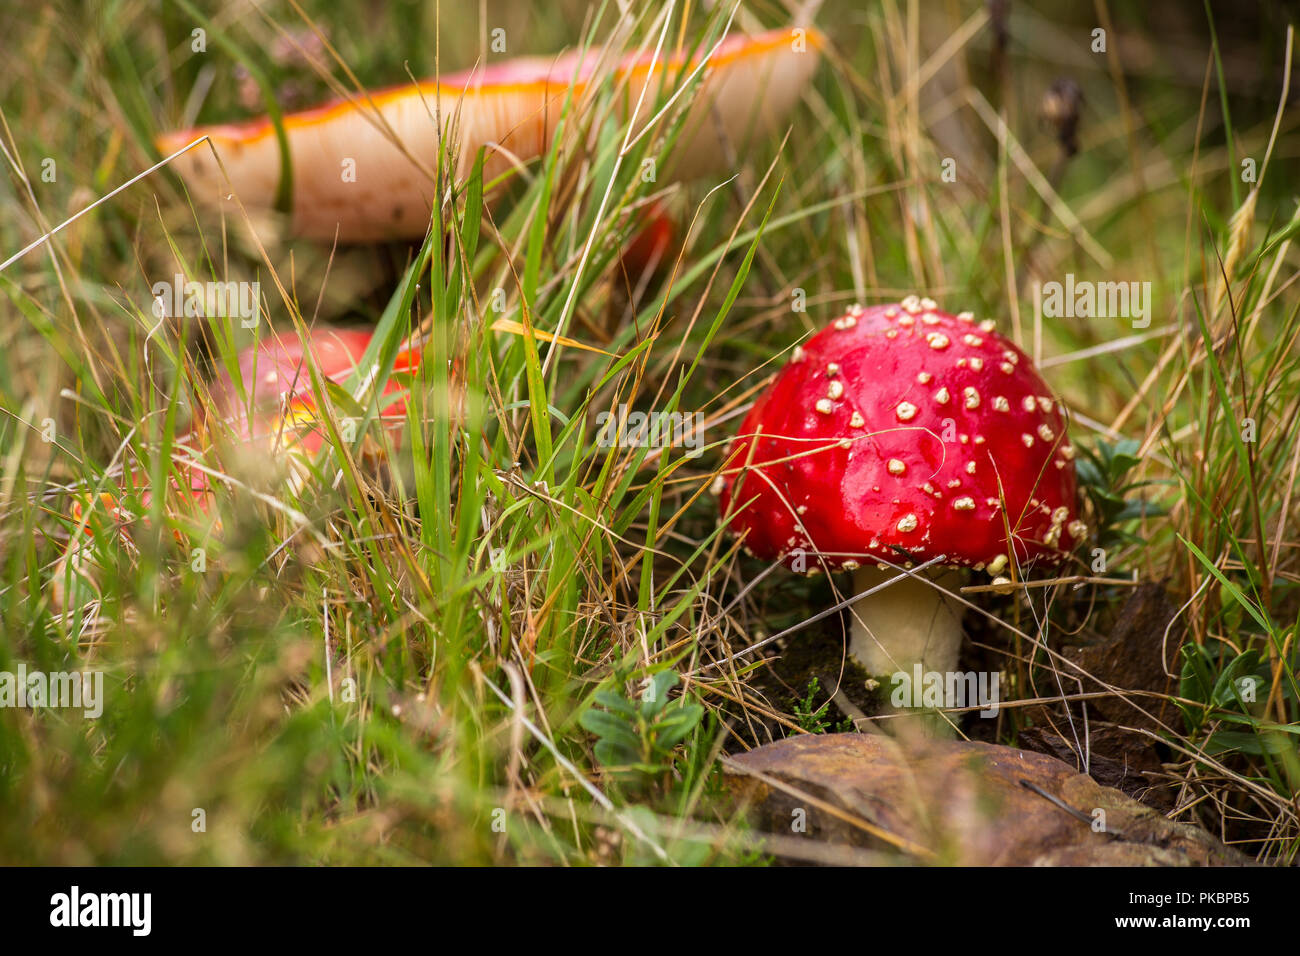 Red Mushroom With White Spots Flake close-up in the autumn forest Stock Photo